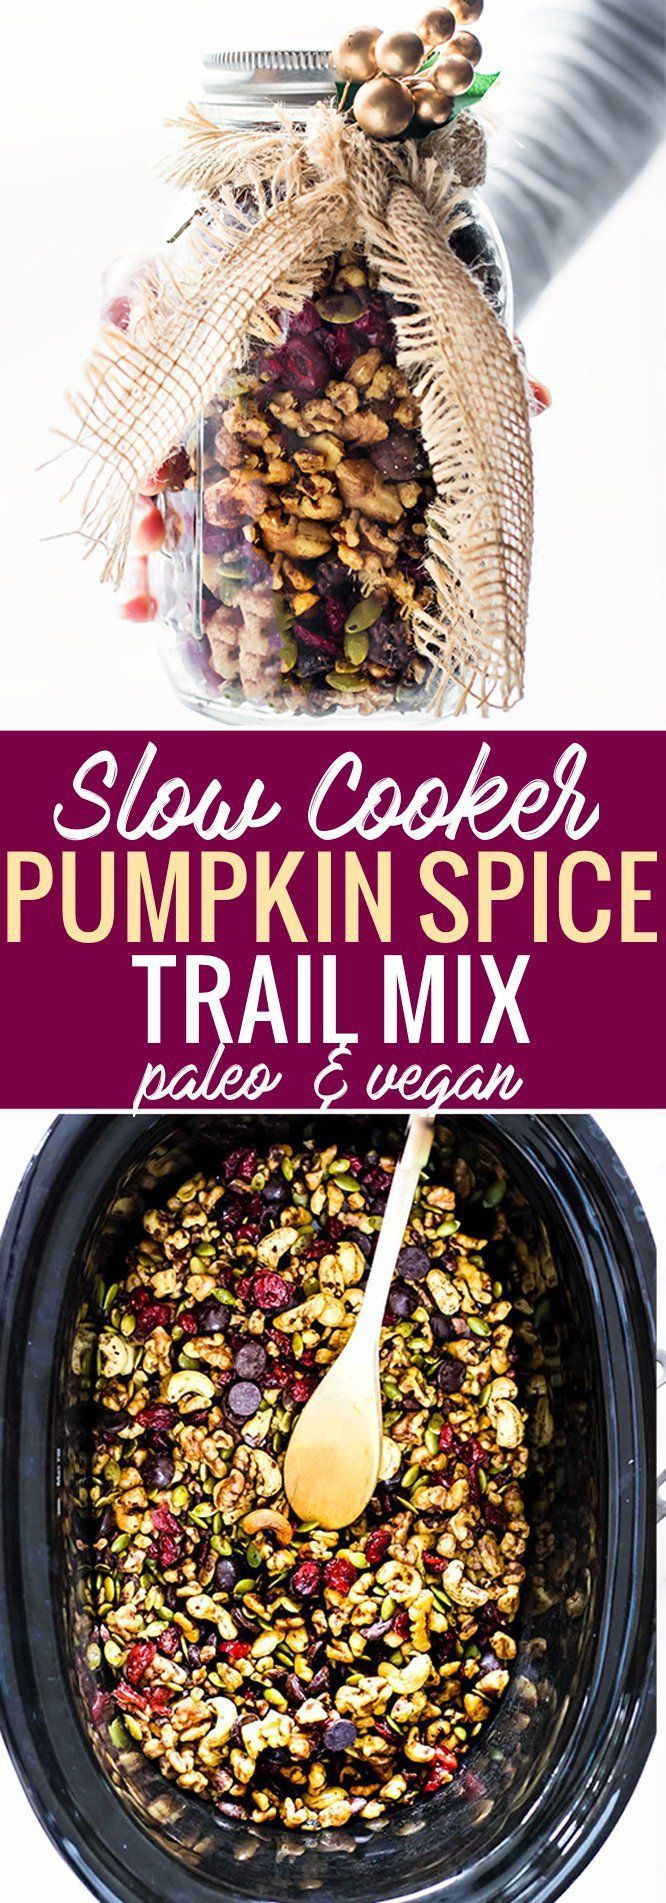 This pumpkin spice trail mix is not only easy to make in the slow cooker, but paleo and vegan friendly too! Dark chocolate, cocoa nibs, cranberries, Walnuts, pumpkin spice, and more! Great as a Holiday gift or for healthy snacking. Smells amazing, tastes amazing! http://www.cottercrunch.com /cottercrunch/